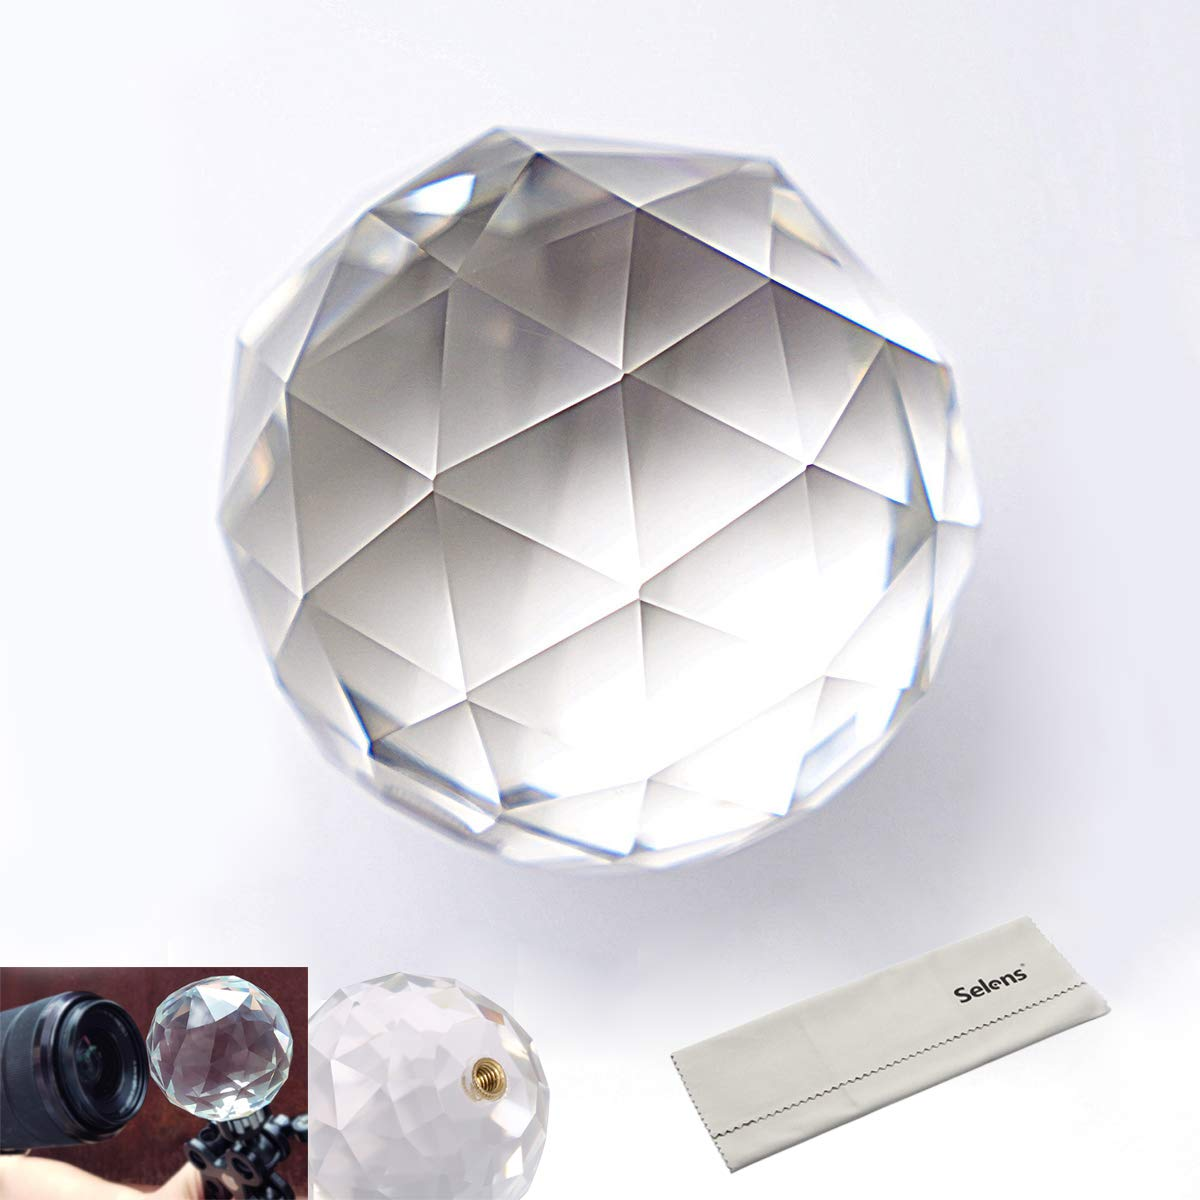 Meking Photo Photography Prism with Female 1/4 Inch, Professional Crystal Glass Ball Create Light Rainbow Effect for Camera Lens, for Photographer (60mm /2.4 Inch) by Meking